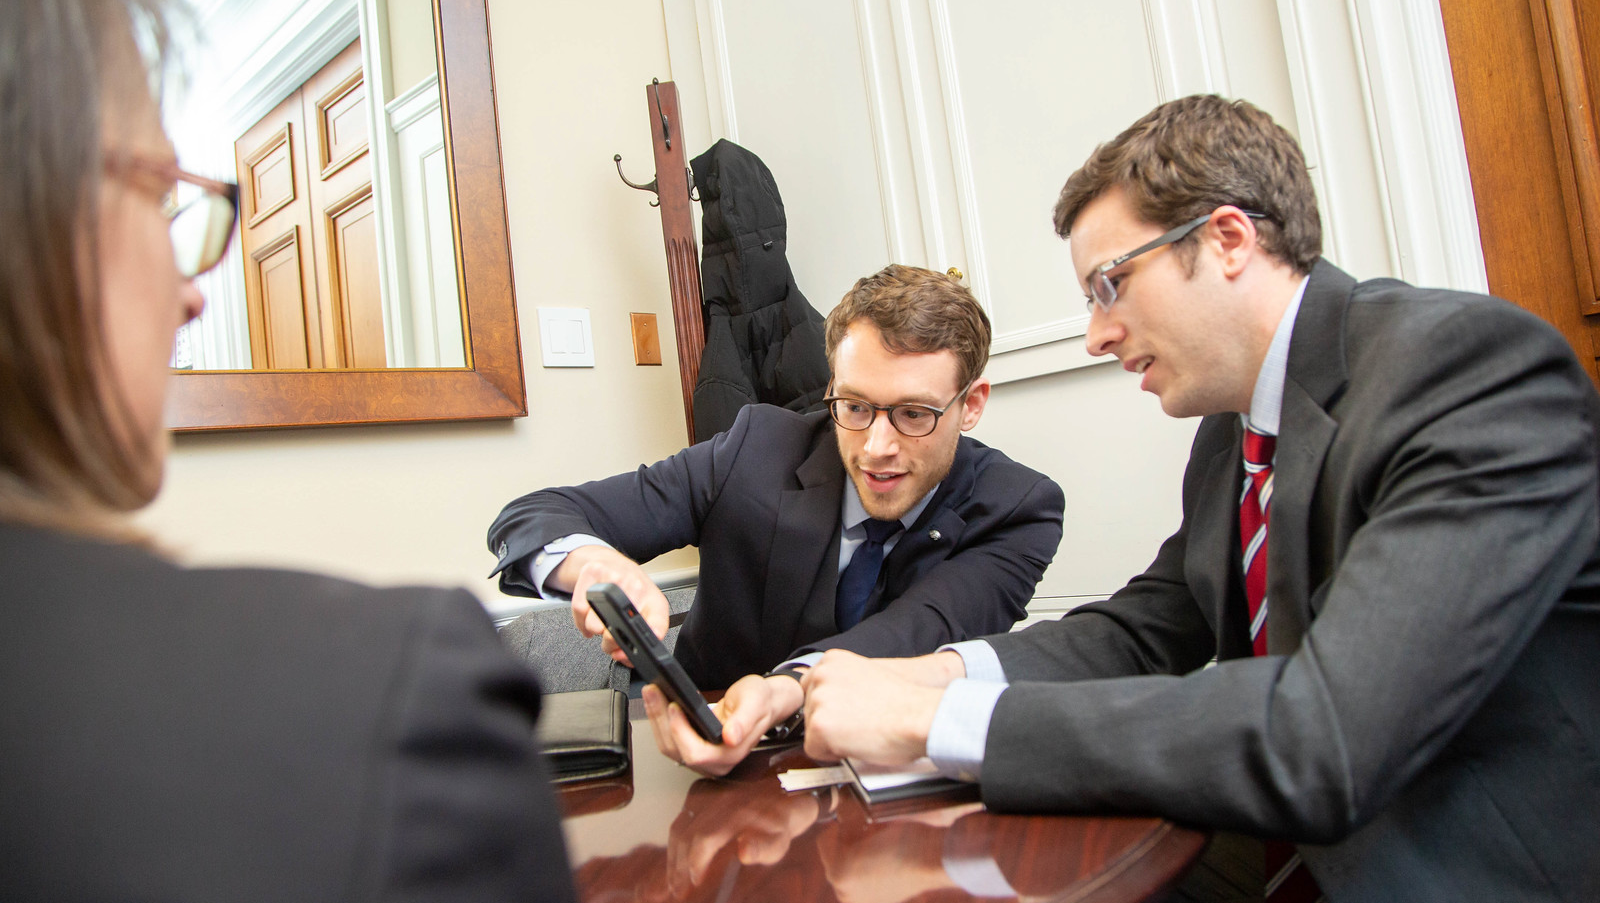 SfN advocate Joe Luchsinger (left) shares a video of light sheet microscopy in a mouse brain with Congressional staff.